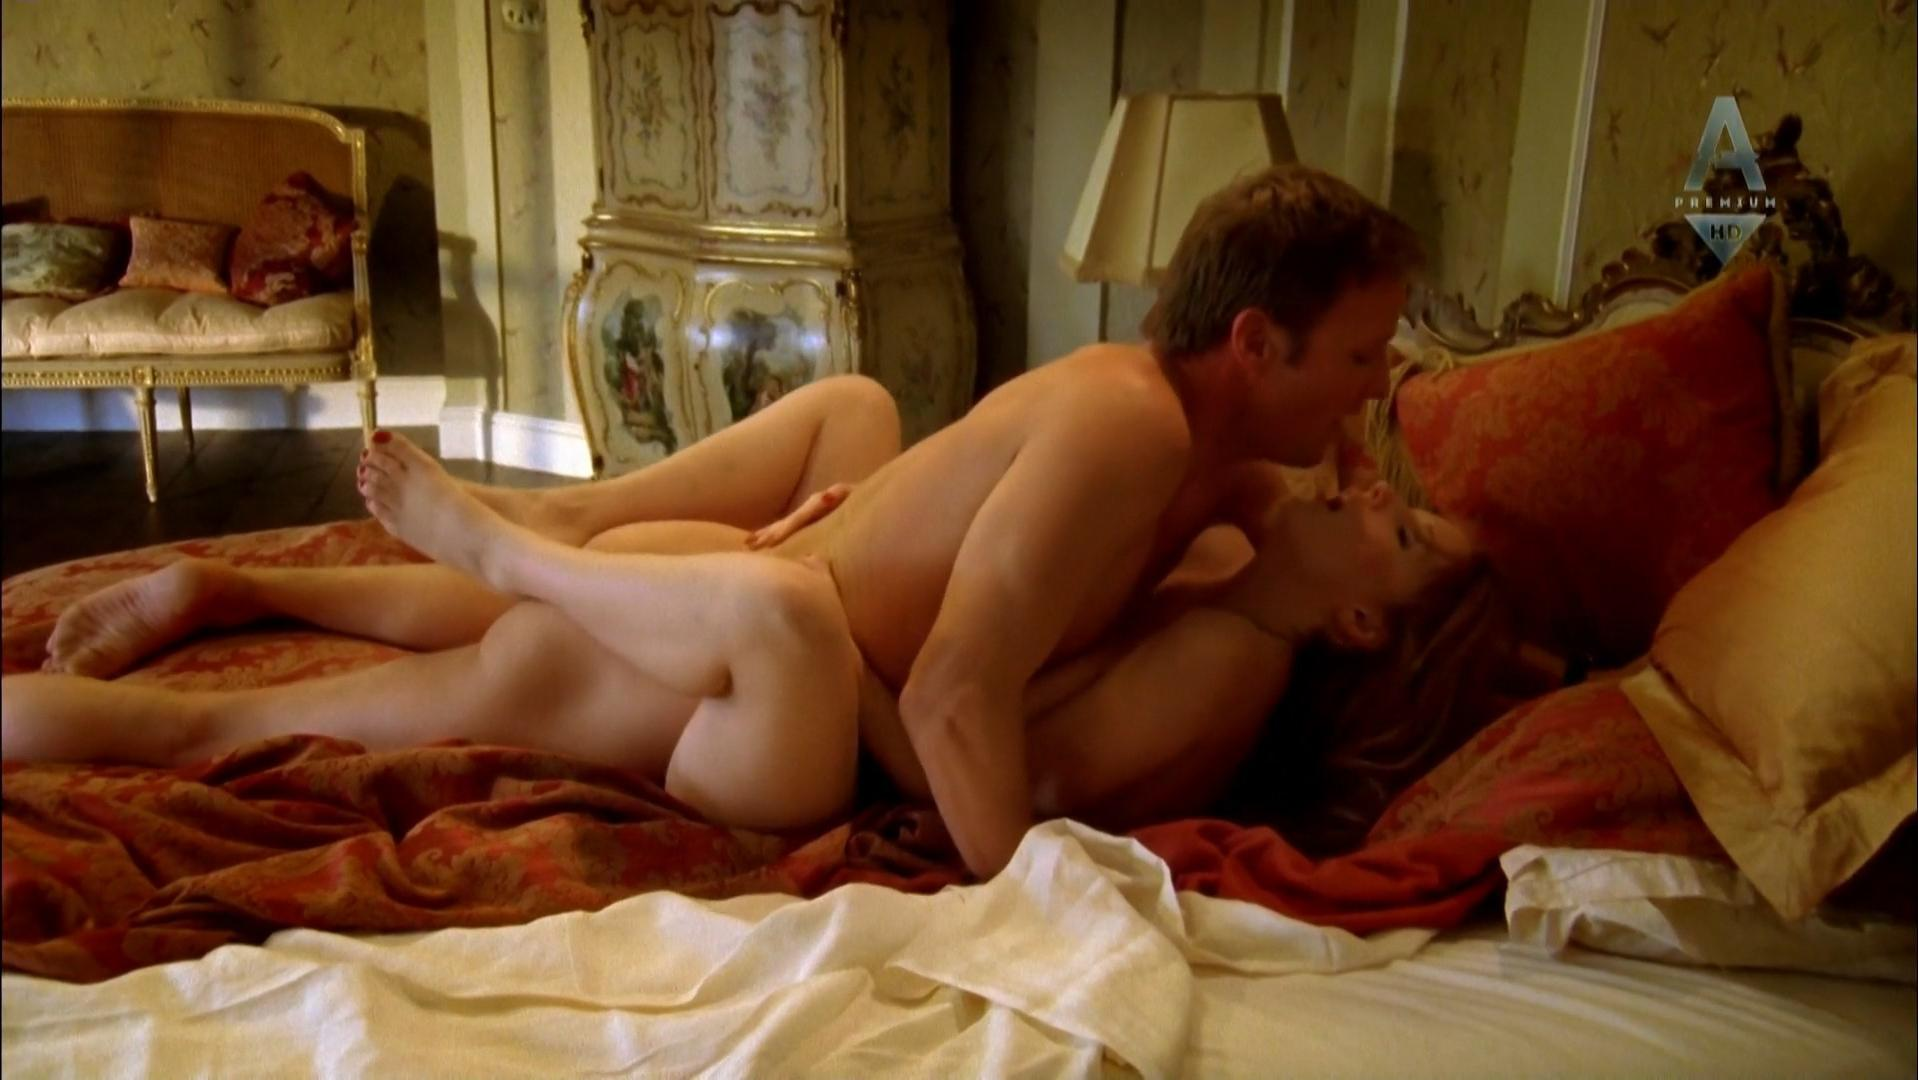 For Kelly reilly hot sexy nude apologise